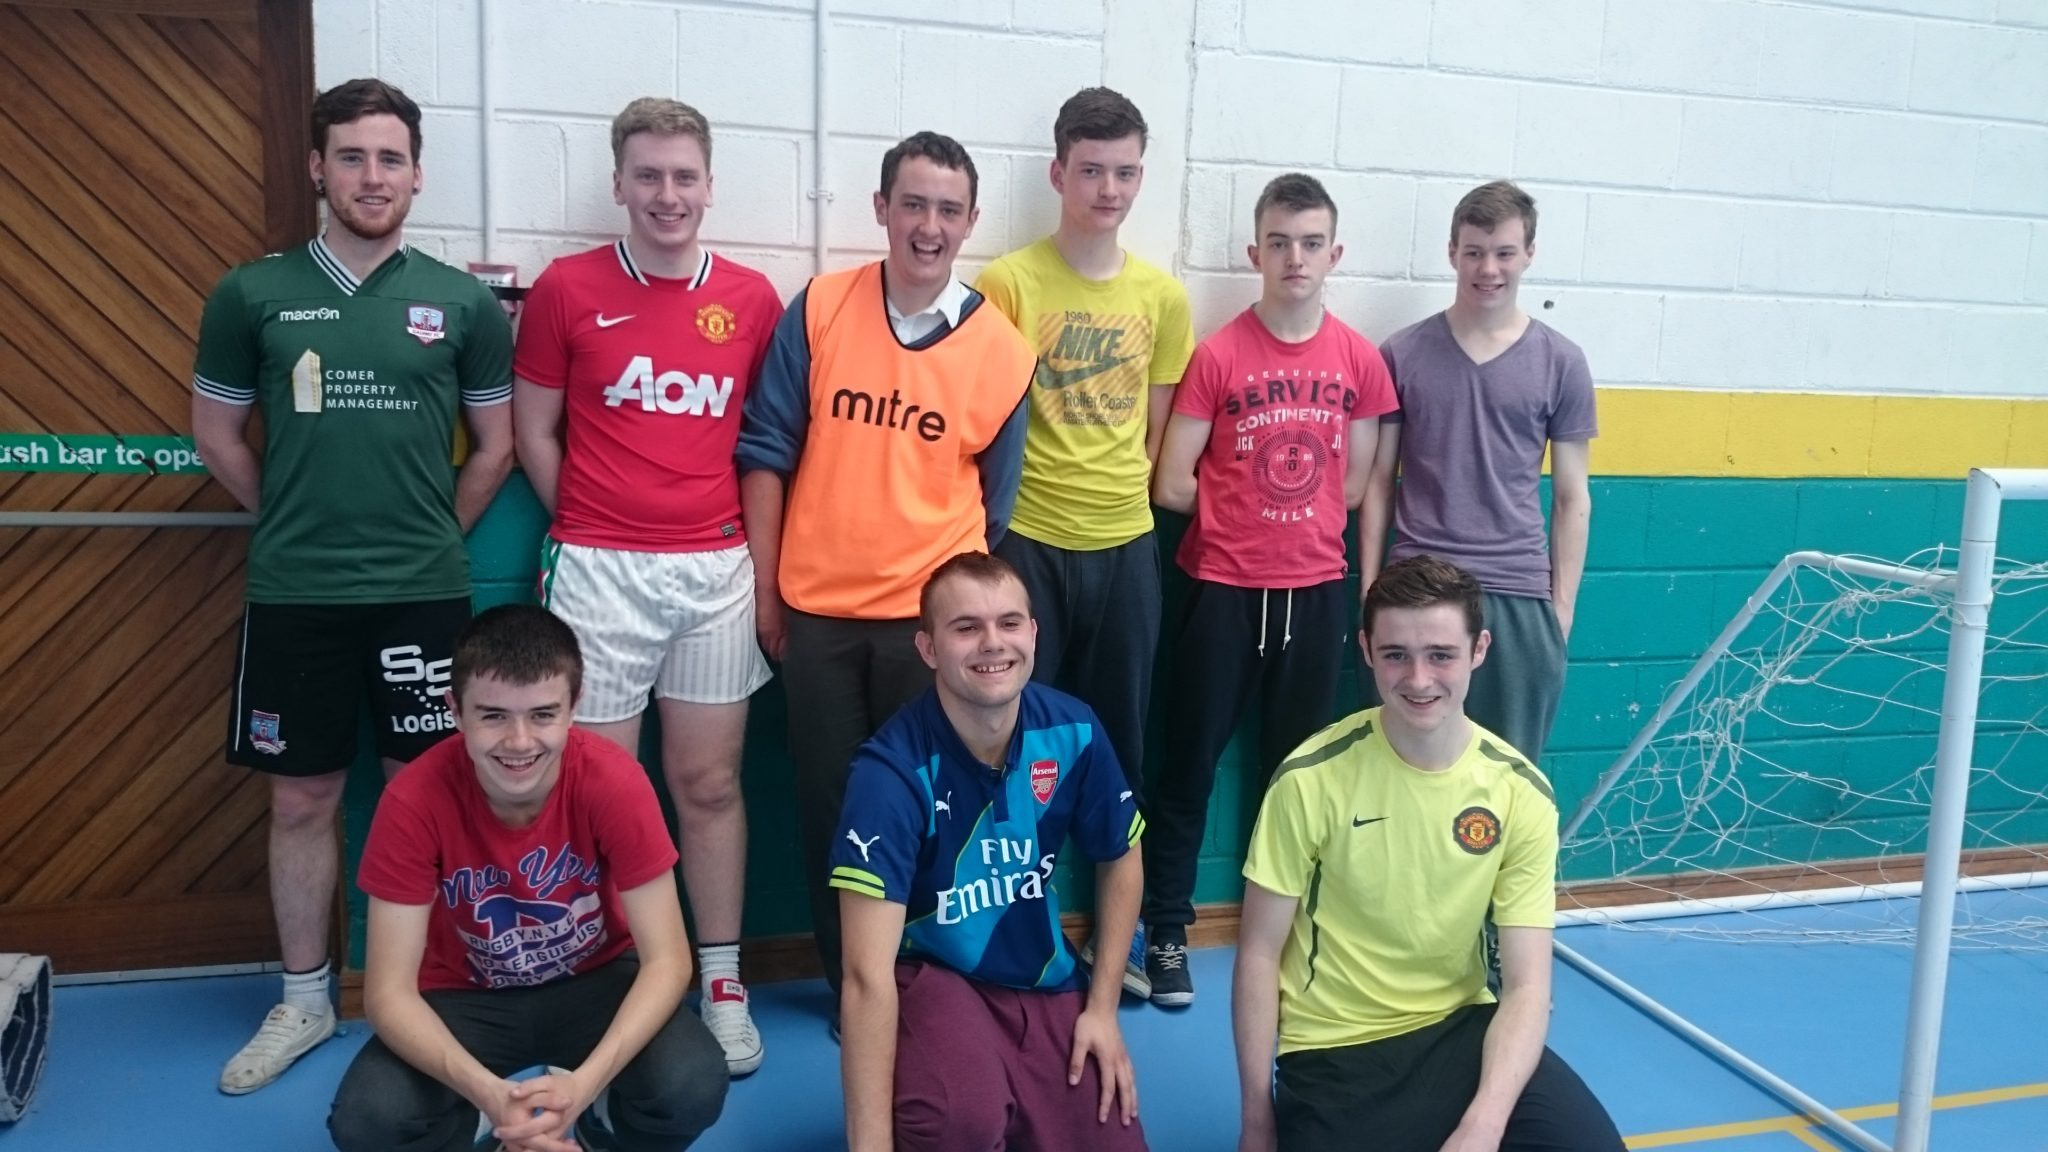 Peter Shanahan, Luke Barry, Patrick O'Connor, Darragh Breen, Daniel Barrett, Warren Gleeson, Anthony Mullins, Jimmy O'Connell and Aidan O'Connor enjoy some activities in Desmond College Active Schools Week April 2015